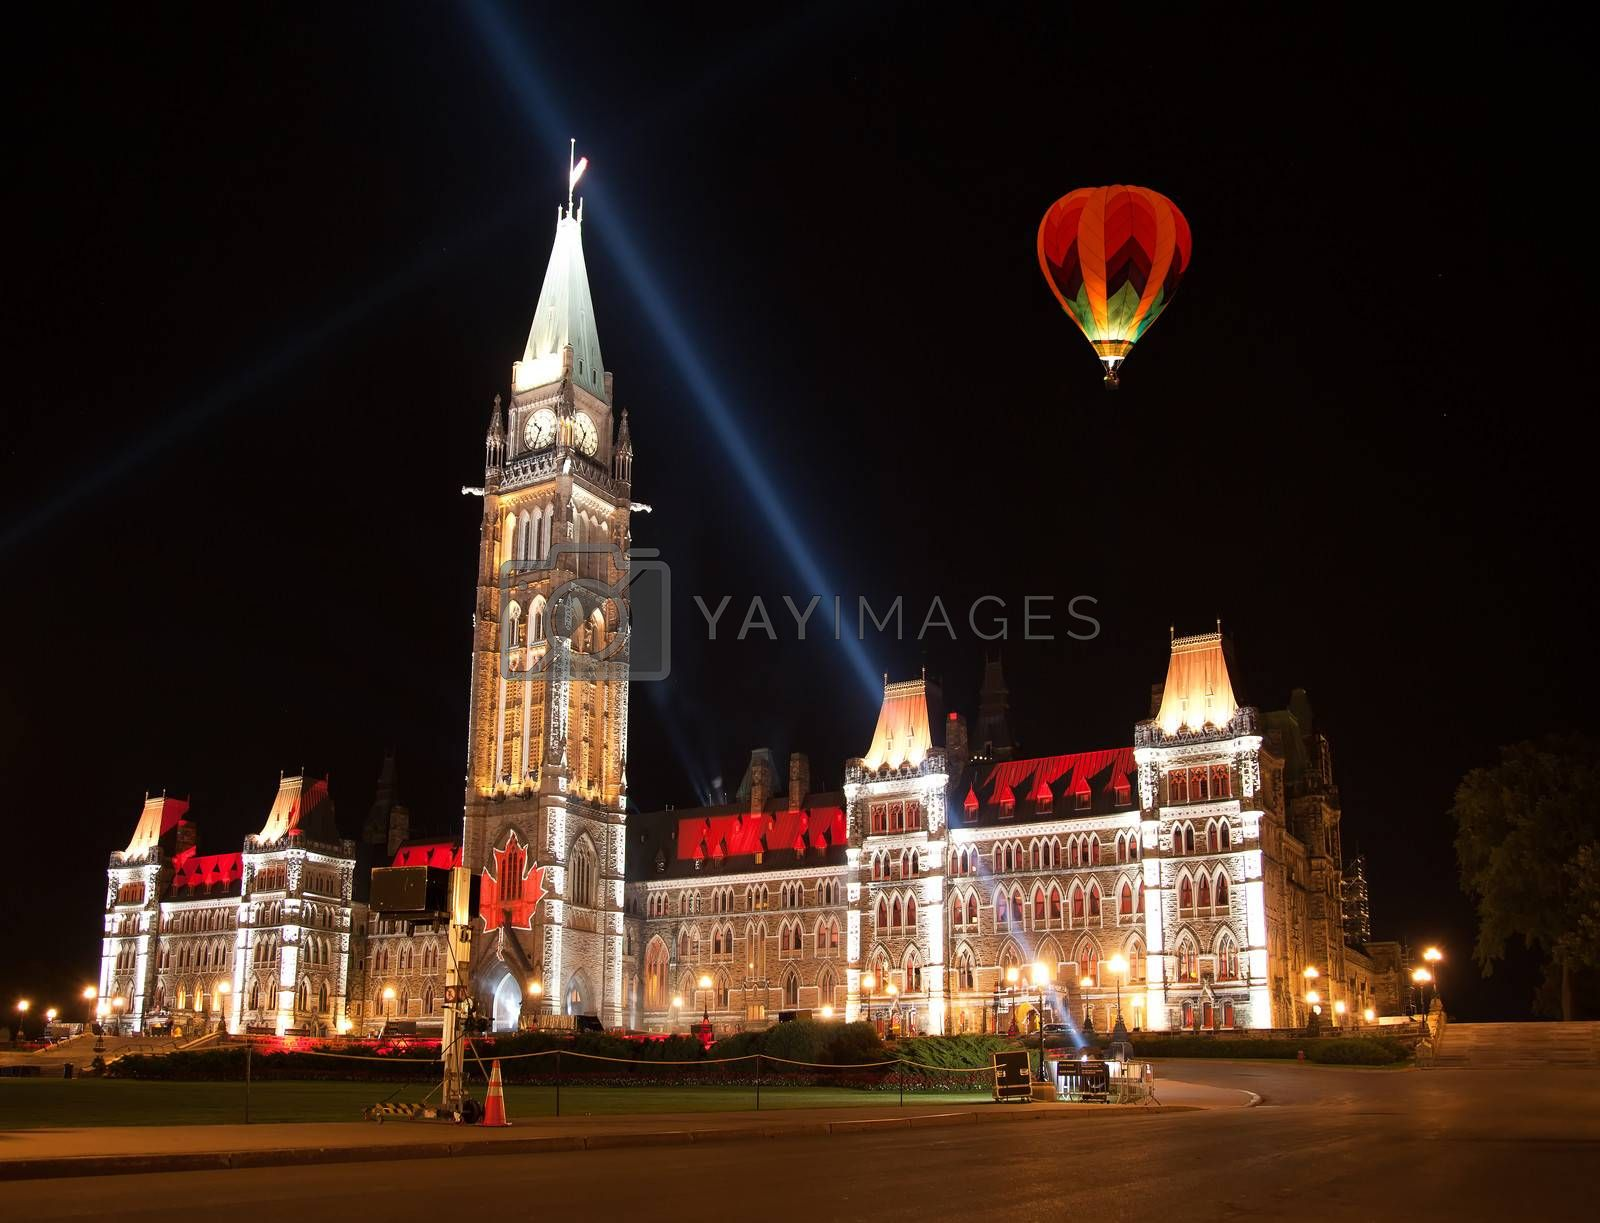 OTTAWA, CANADA ��� AUGUEST 22:  The beautiful light show projected on the parliament building to celebrate the Canada���s history and people in the summer night of August 22, 2011 in Ottawa, Canada.